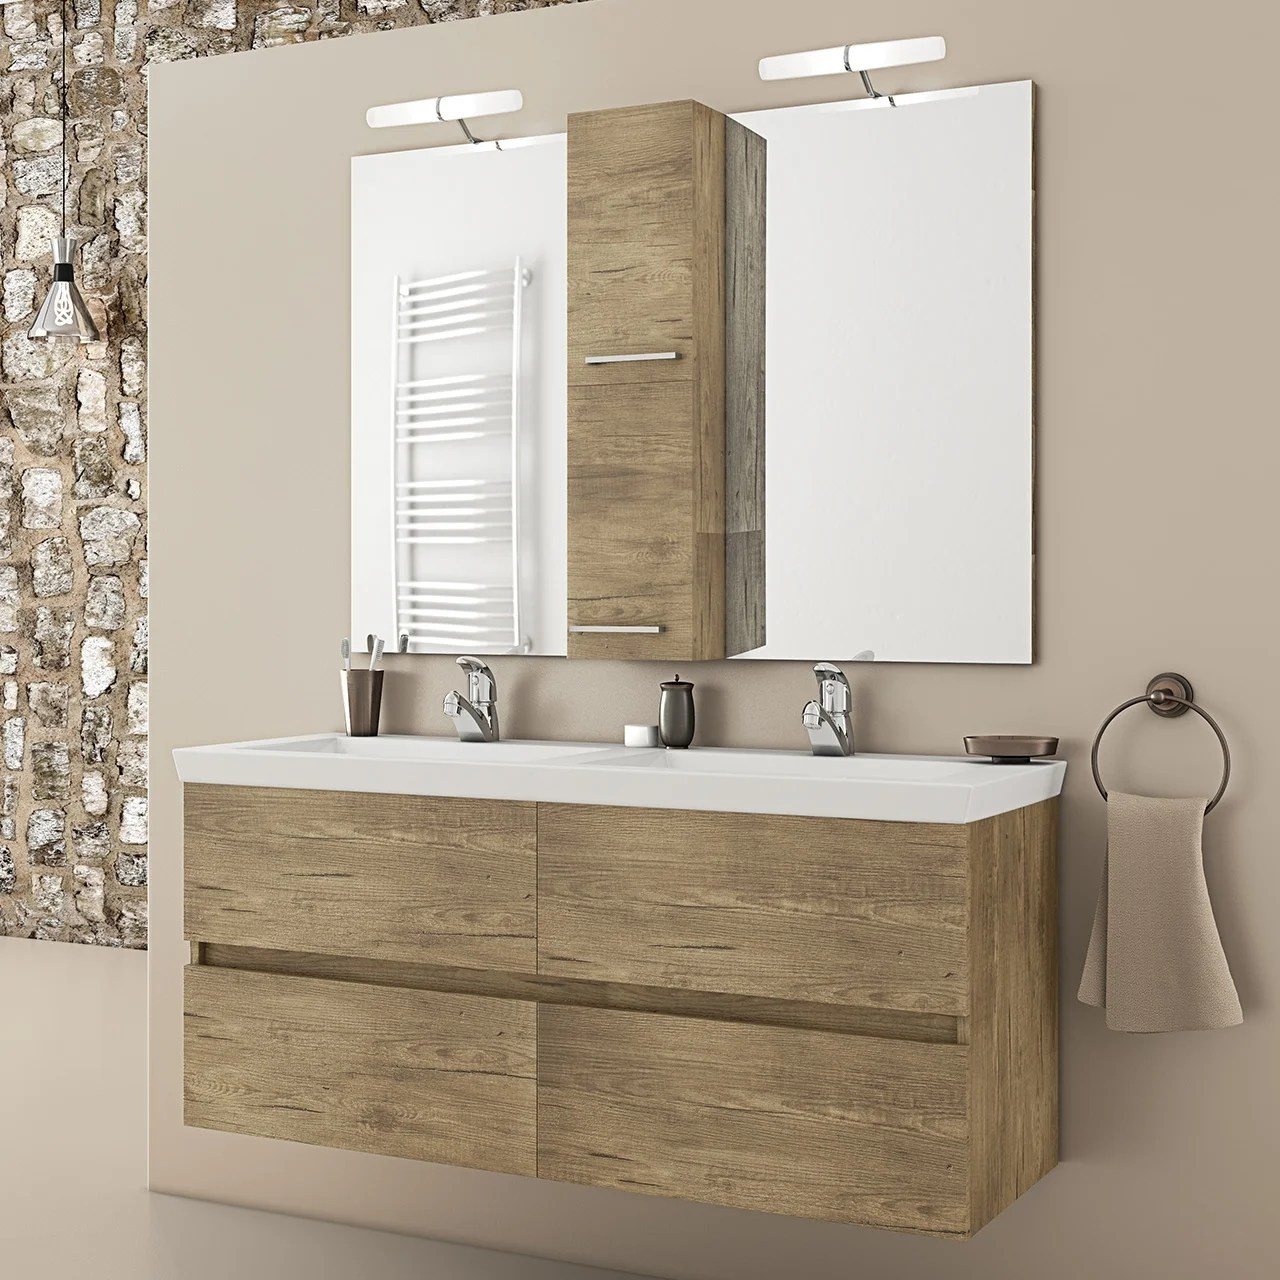 48 natural double floating vanity with his and her integrated porcelain sinks